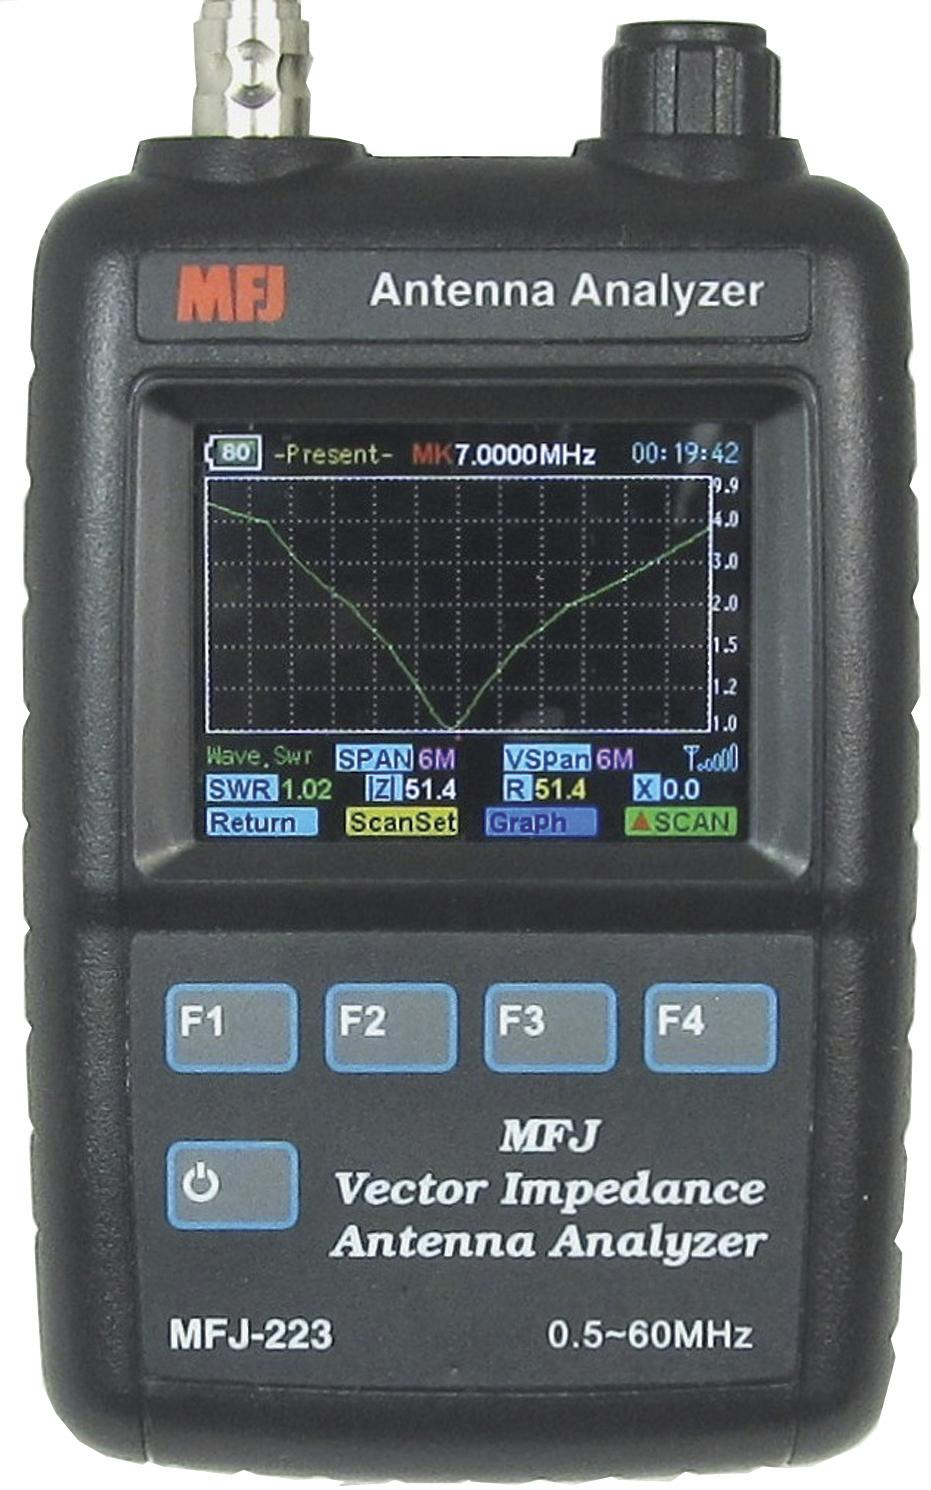 MFJ-223 Color Graphic VNA Antenna Analyzer 1-60Mhz